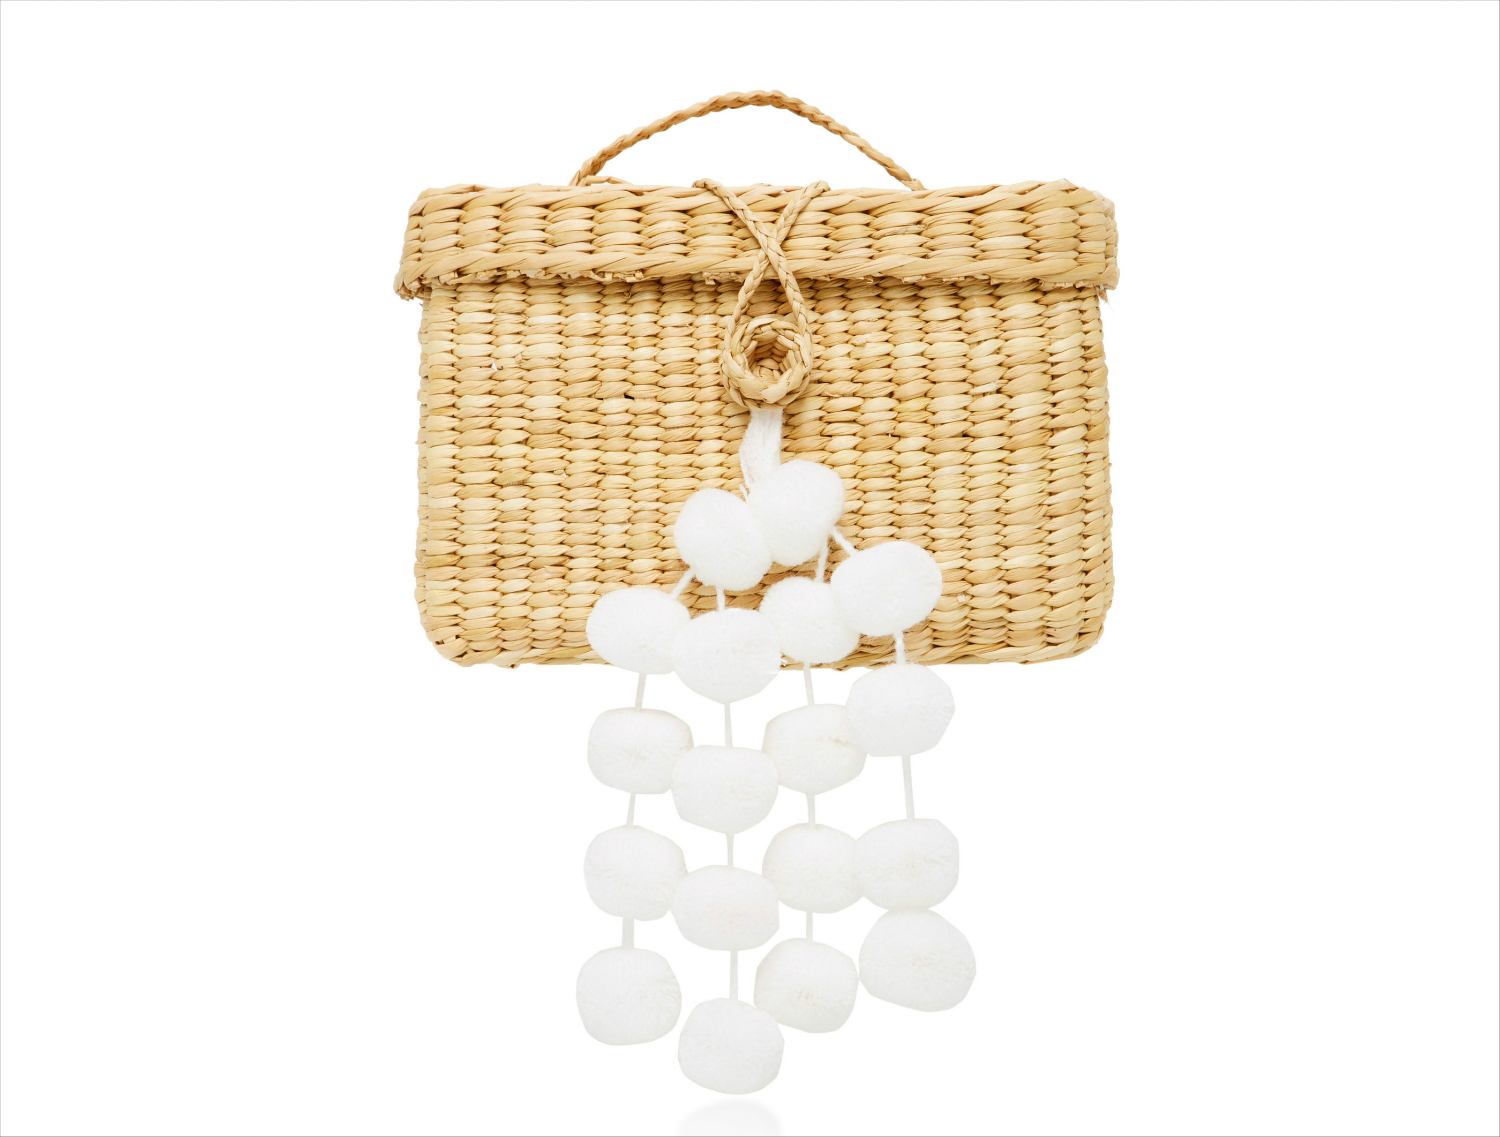 Straw raffia tote baby roge pom pom white bag nannacay moda operandi honeymoon outfit ideas